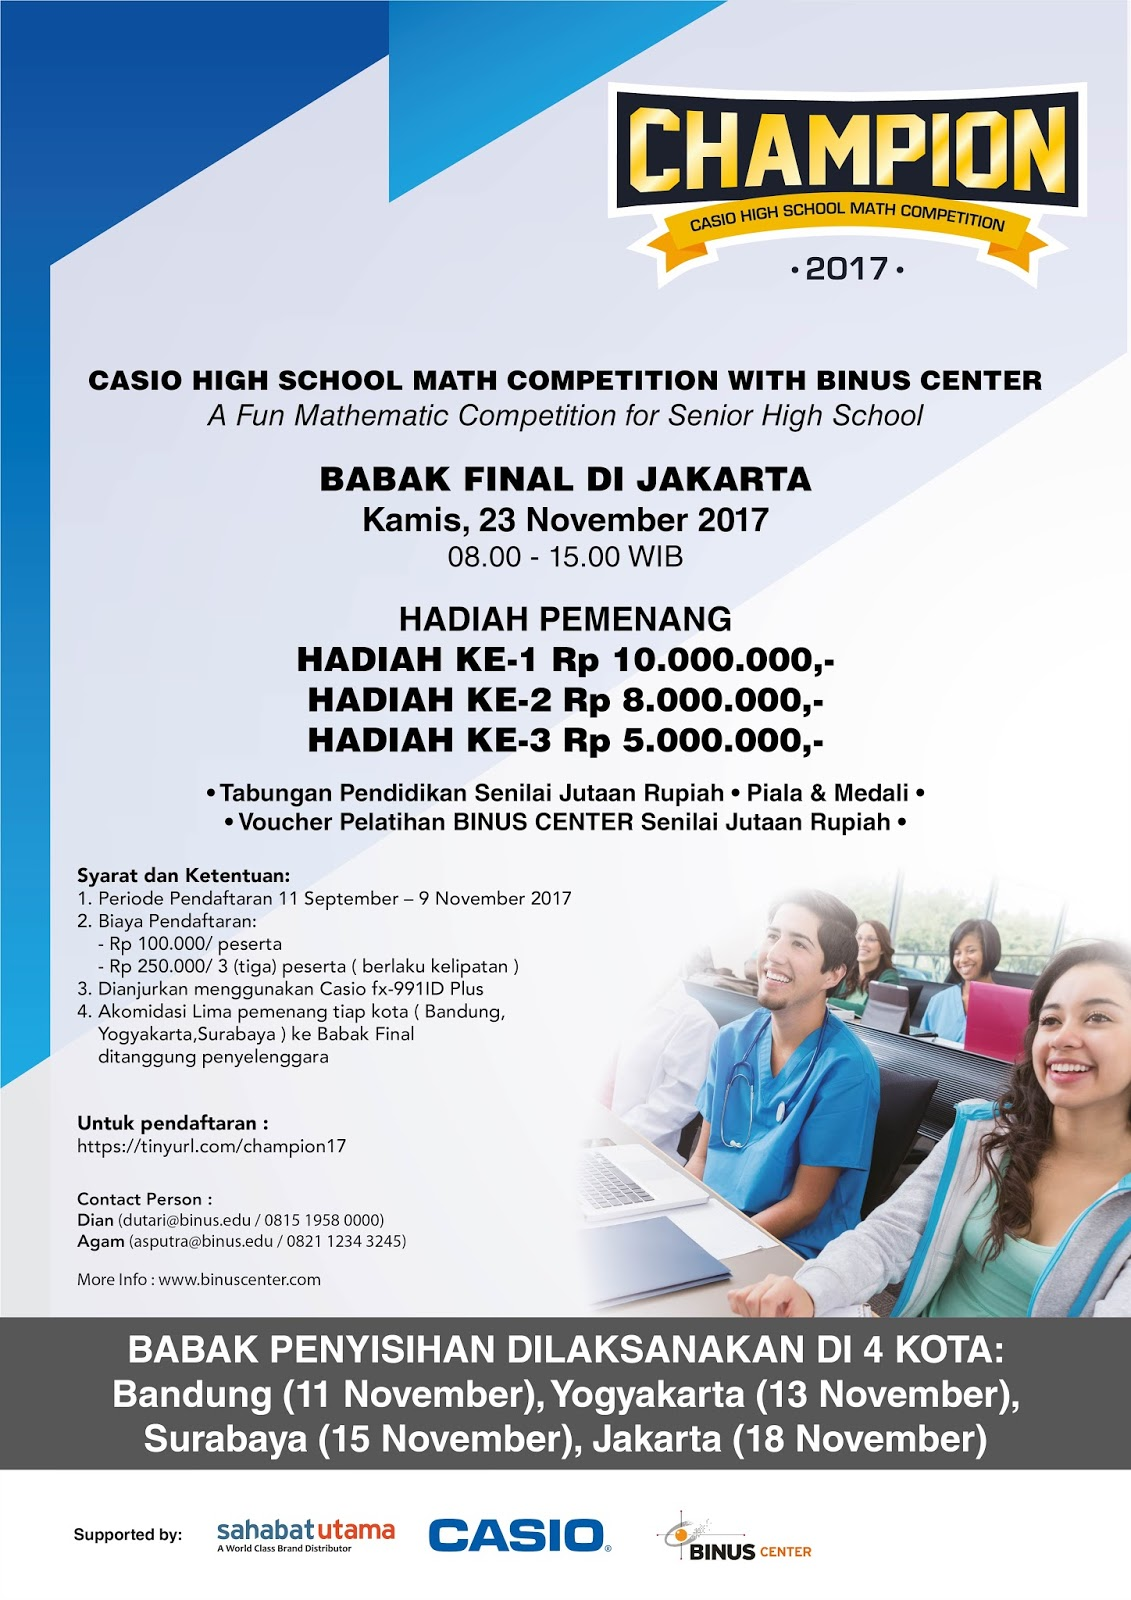 Casio High School Math Competition 2017 Tingkat SMA